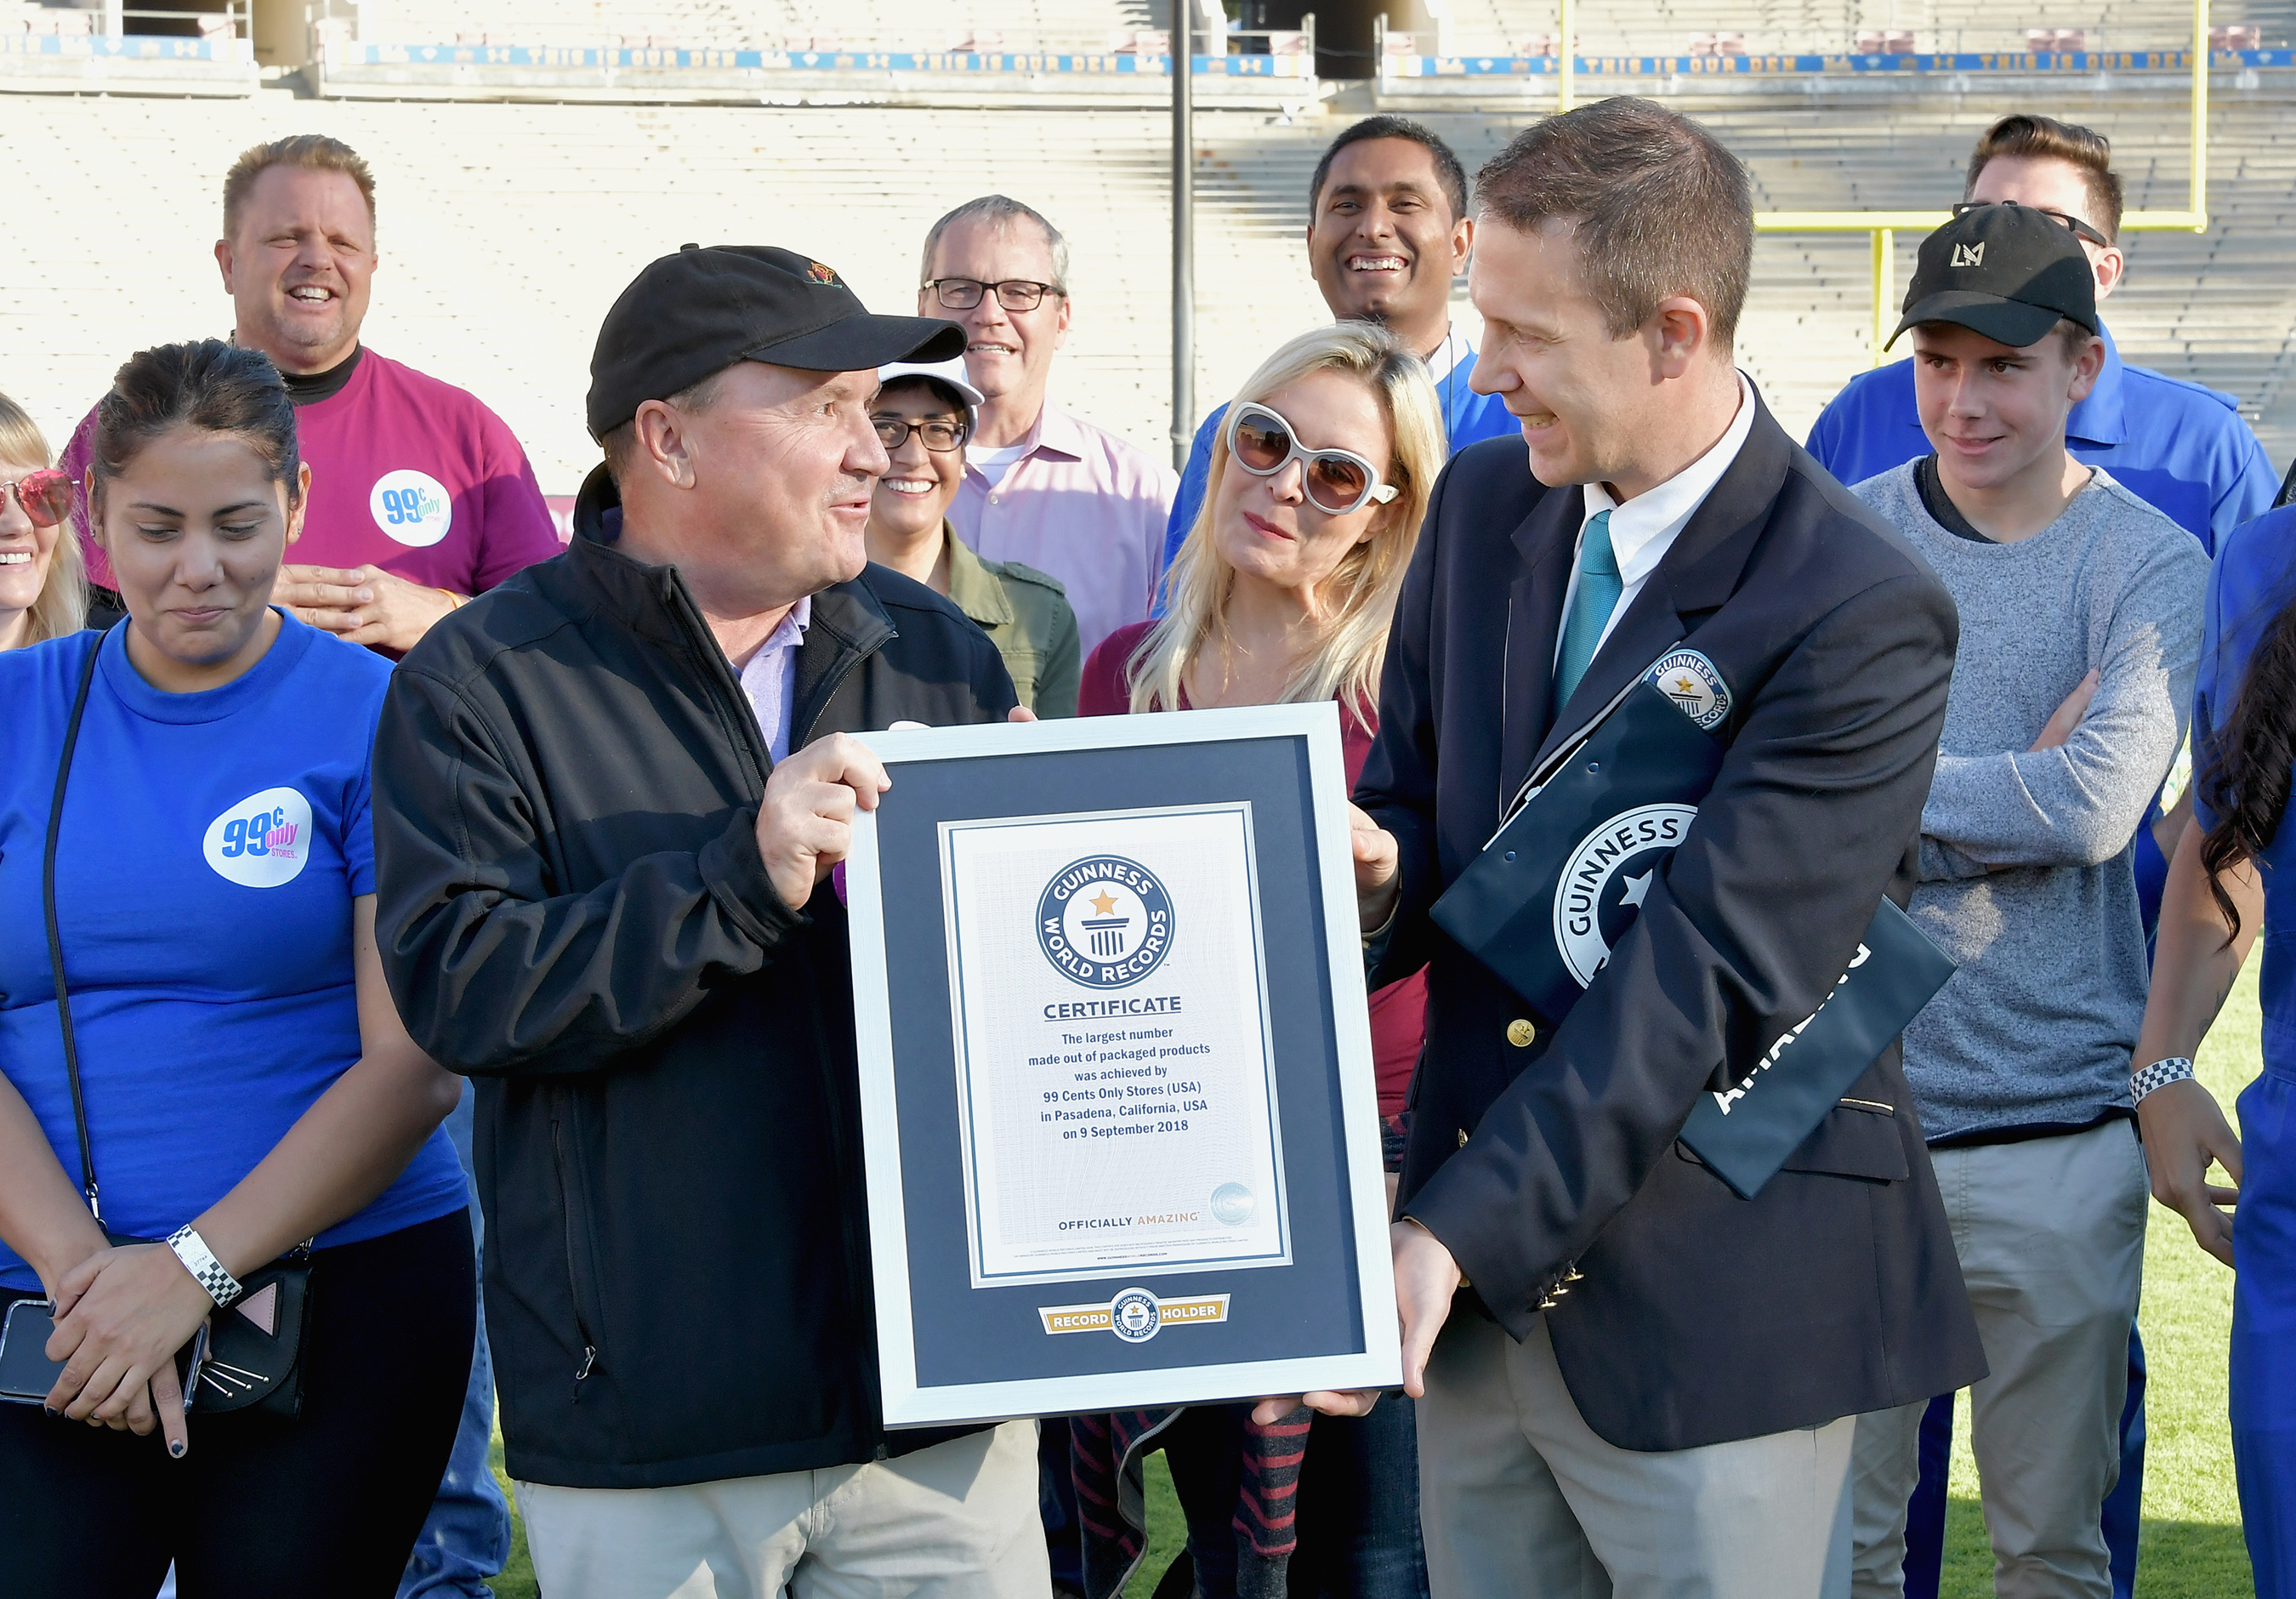 Guinness World Records Adjudicator Philip Robertson (R) presents CEO of 99 Cents Only Stores Jack Sinclair with the certificate for Largest packaged product number at the Rose Bowl Stadium on Sept. 9, 2018 in Pasadena, California.